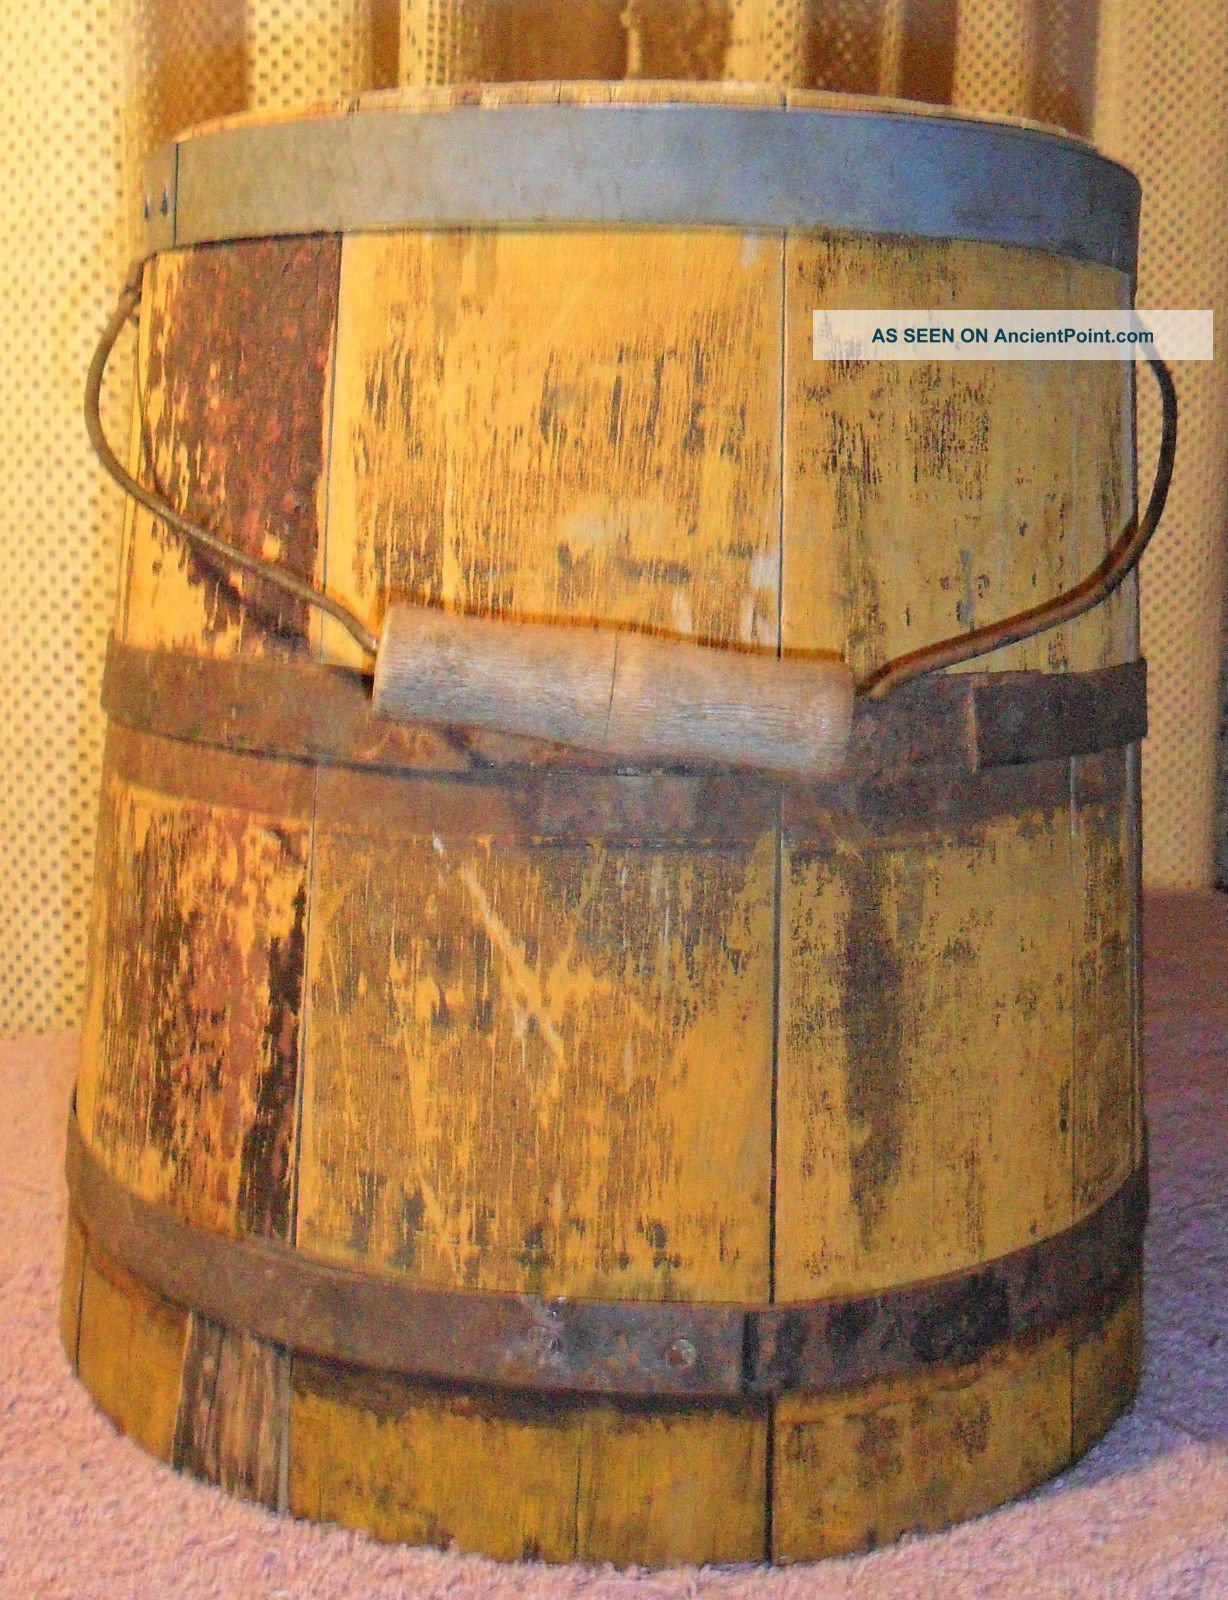 Wooden Milk Bucket Pail Vintage Dairy Container Wood Tongue Groove